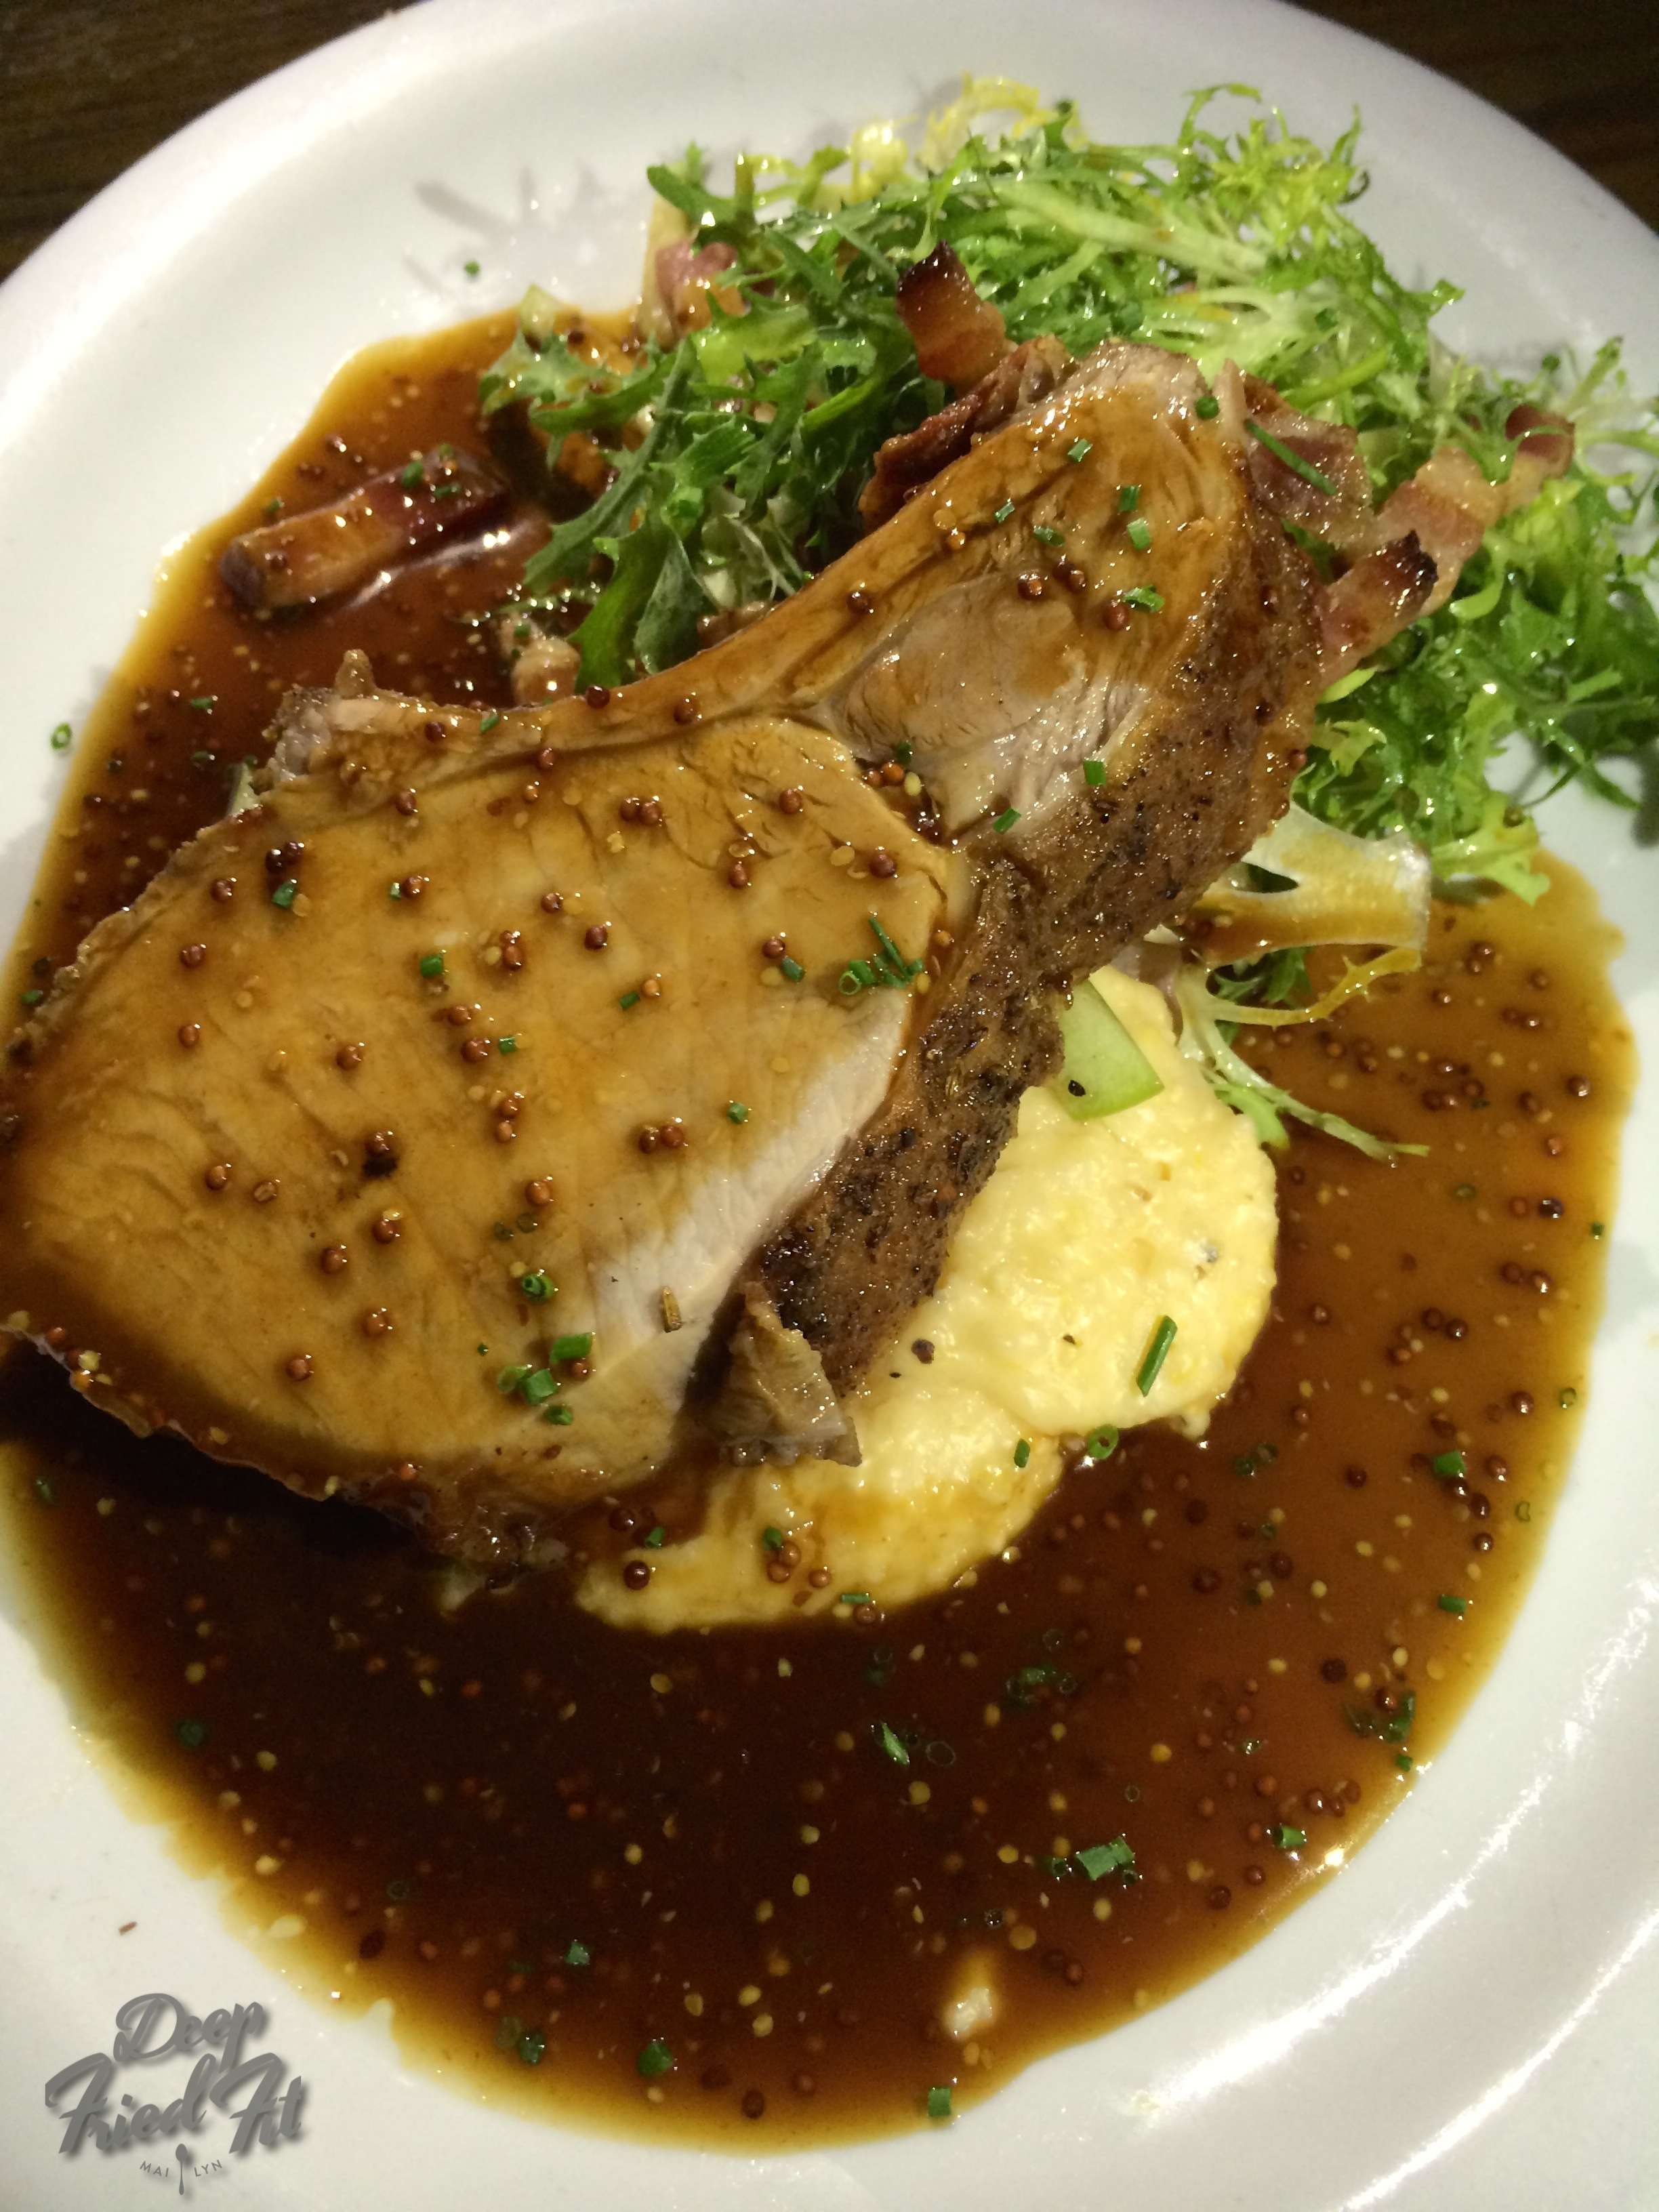 Roasted Duroc Pork Rack over corn grits, apple frisee salad.